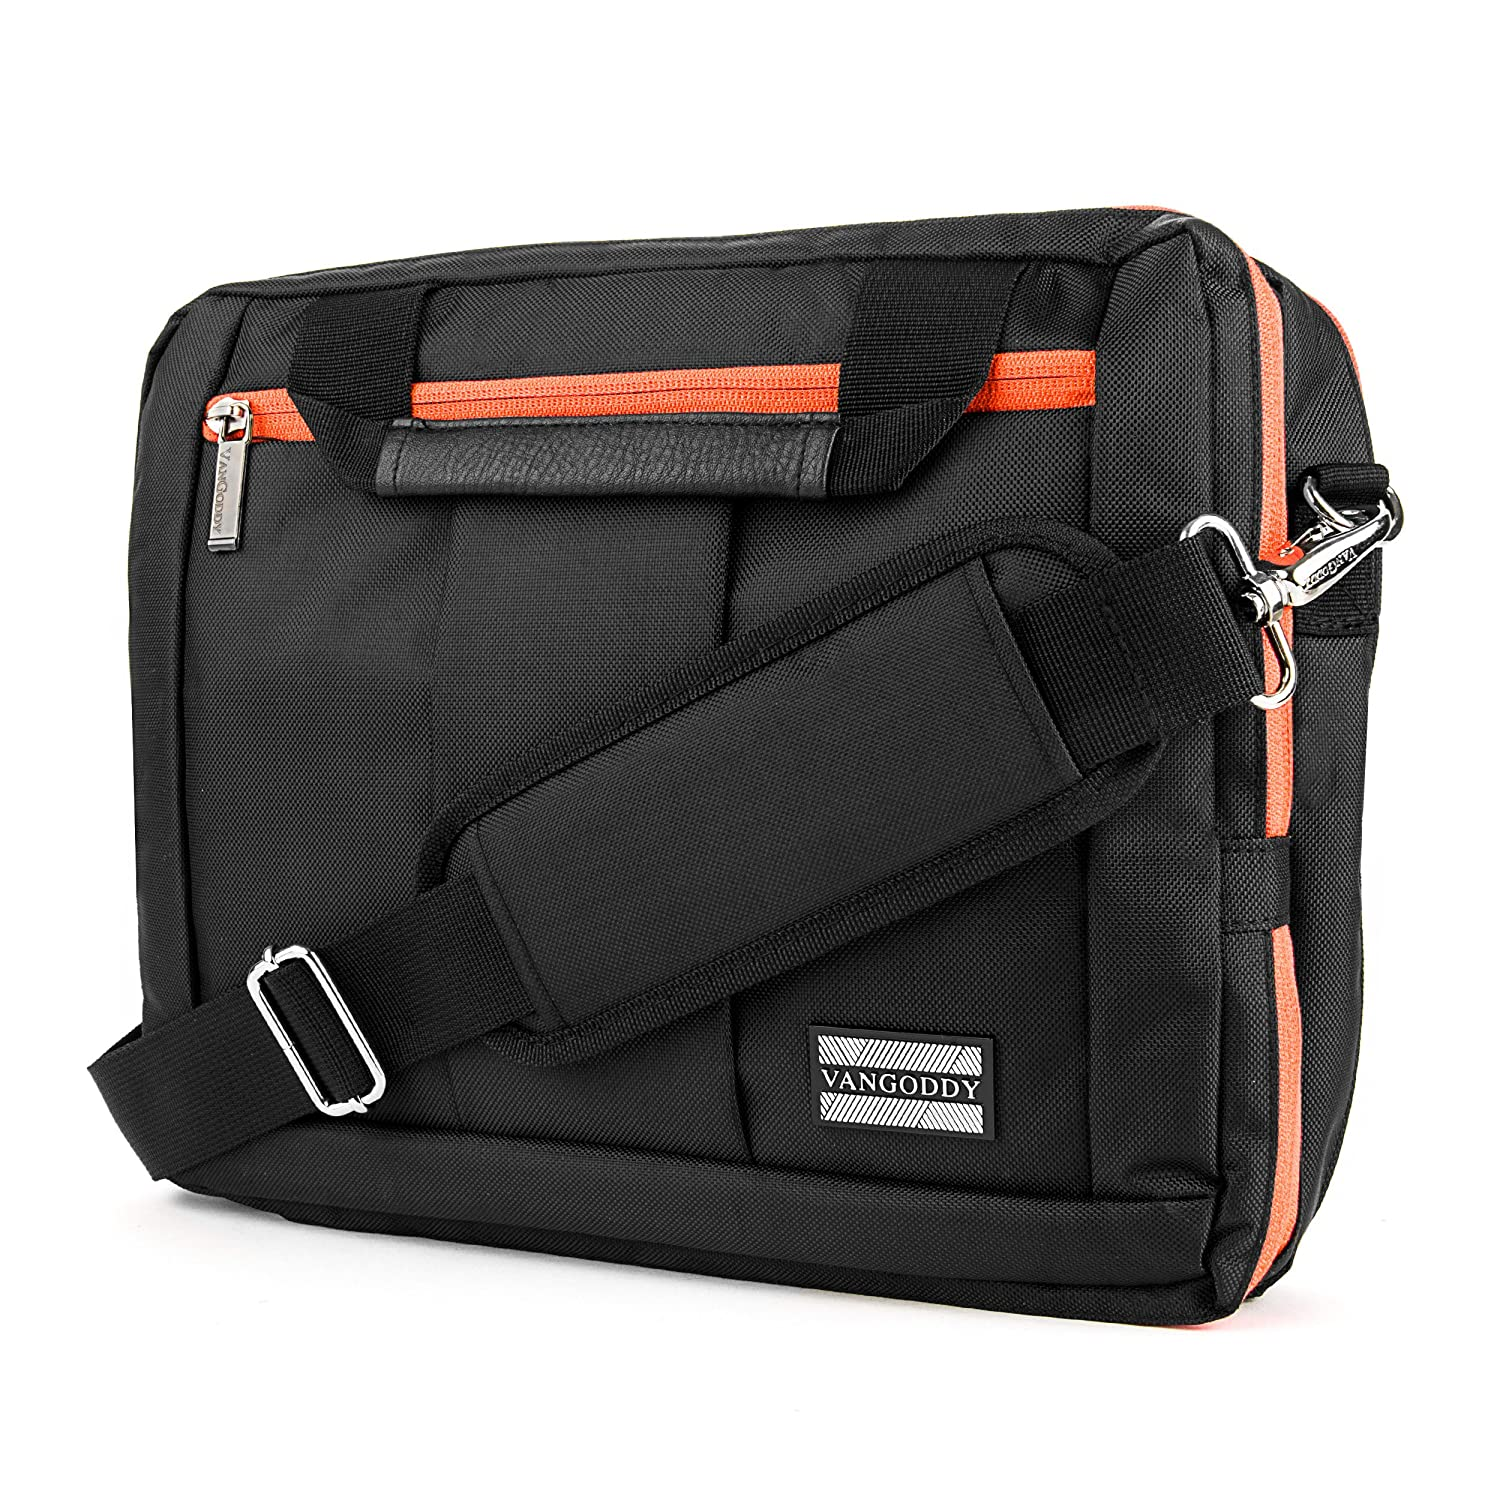 El Prado Collection 3 in 1 Backpack and Messenger Bag for Microsoft Surface Pro 4 12 Tablet Surface Pro 3 12 Tablet Orange